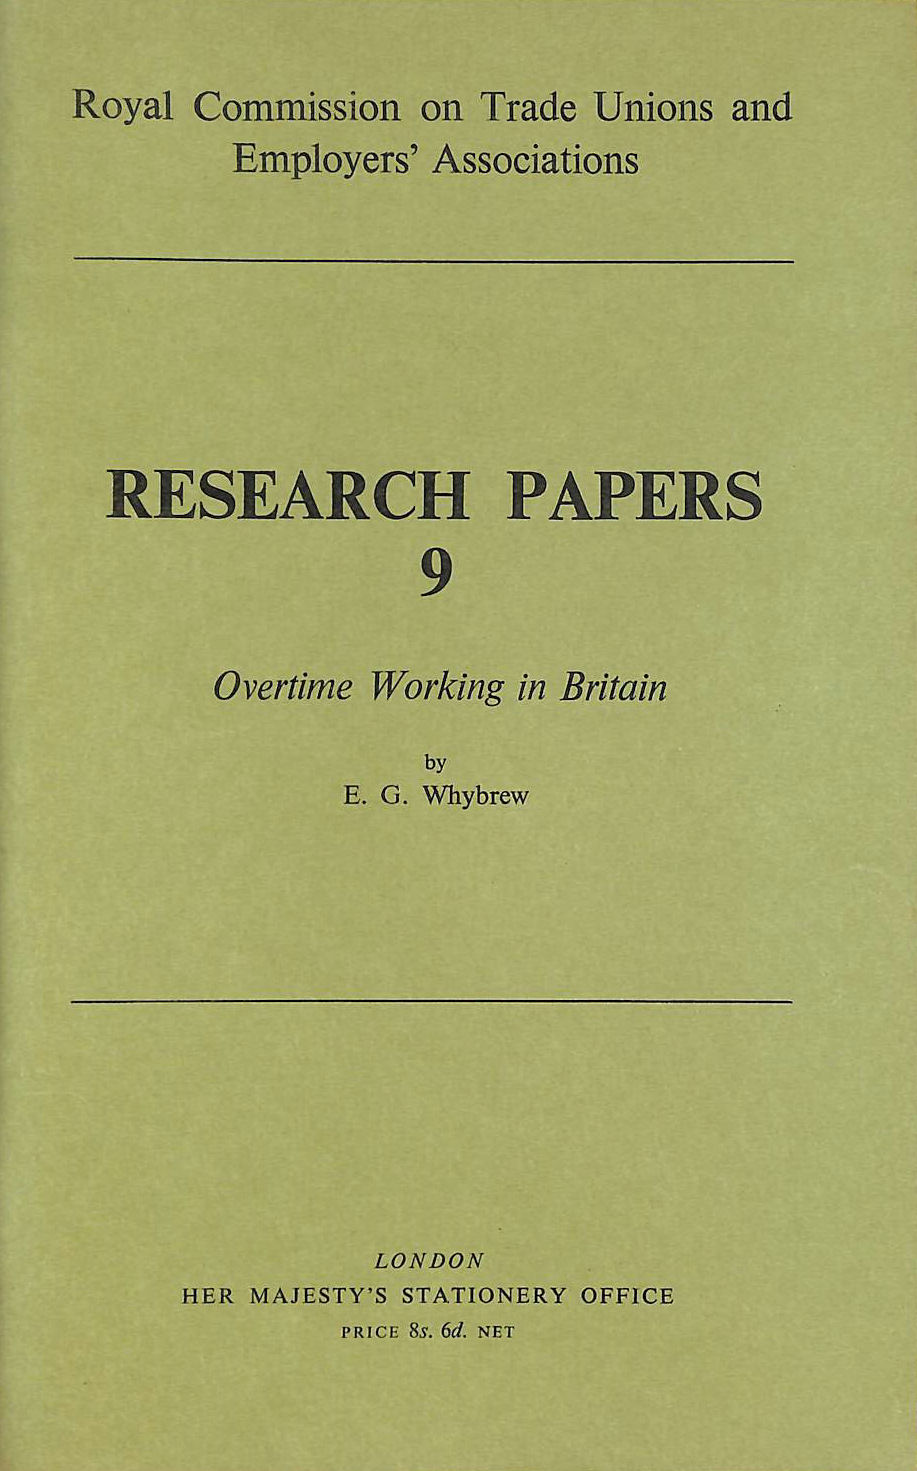 Image for Royal Commission On Trade Unions And Employers' Associations, Research Papers 9: Overtime Working In Britain